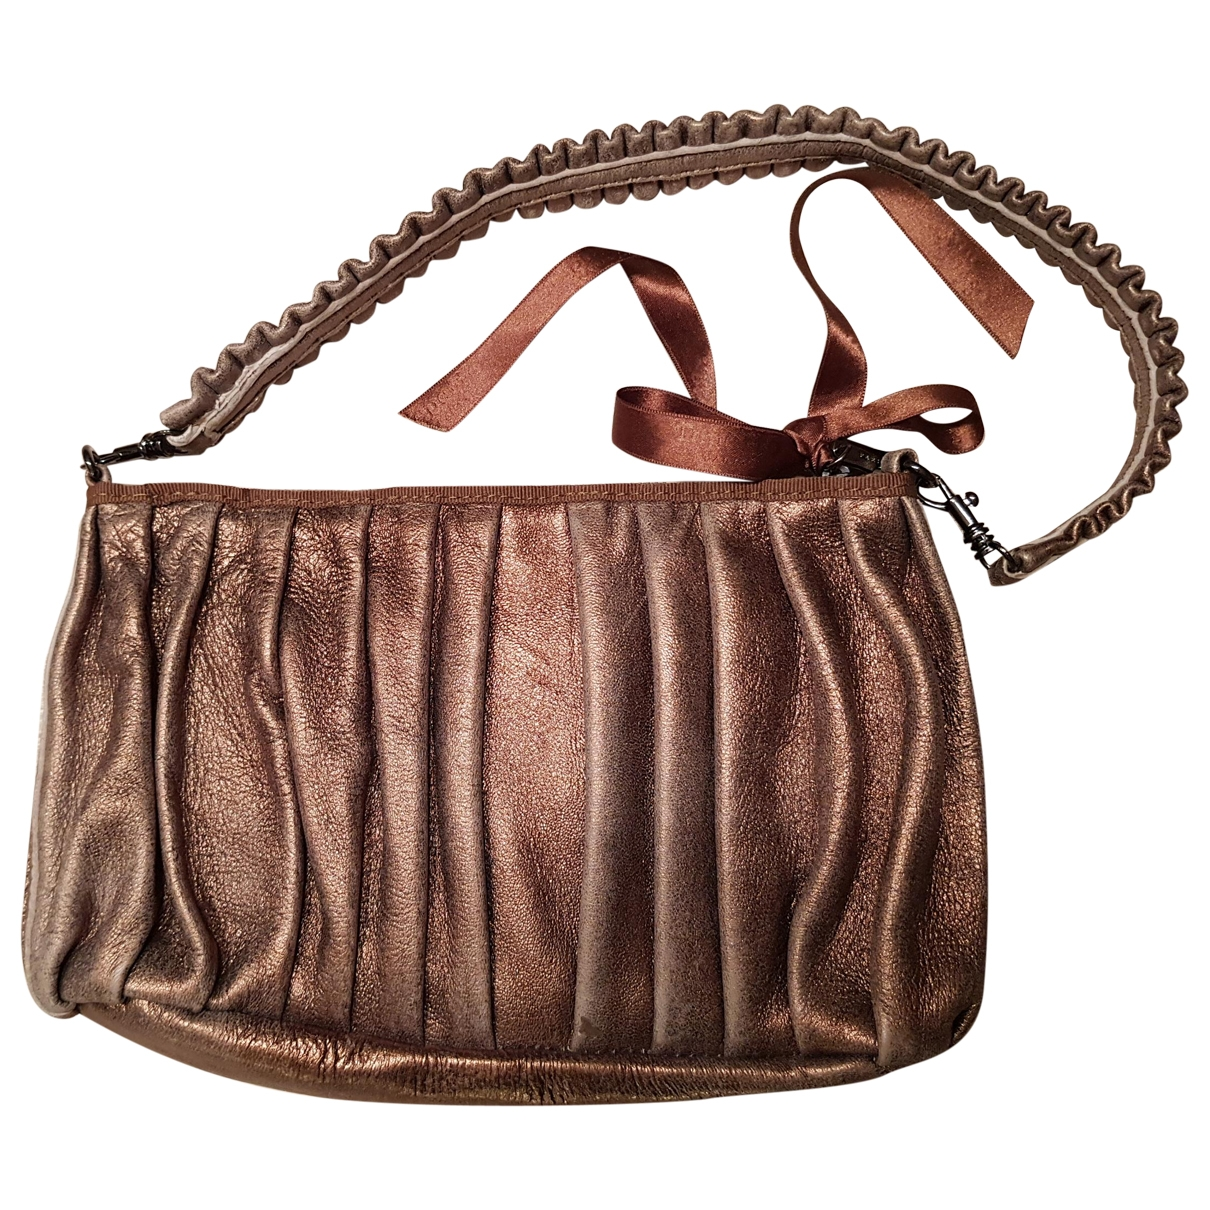 Repetto \N Brown Leather handbag for Women \N